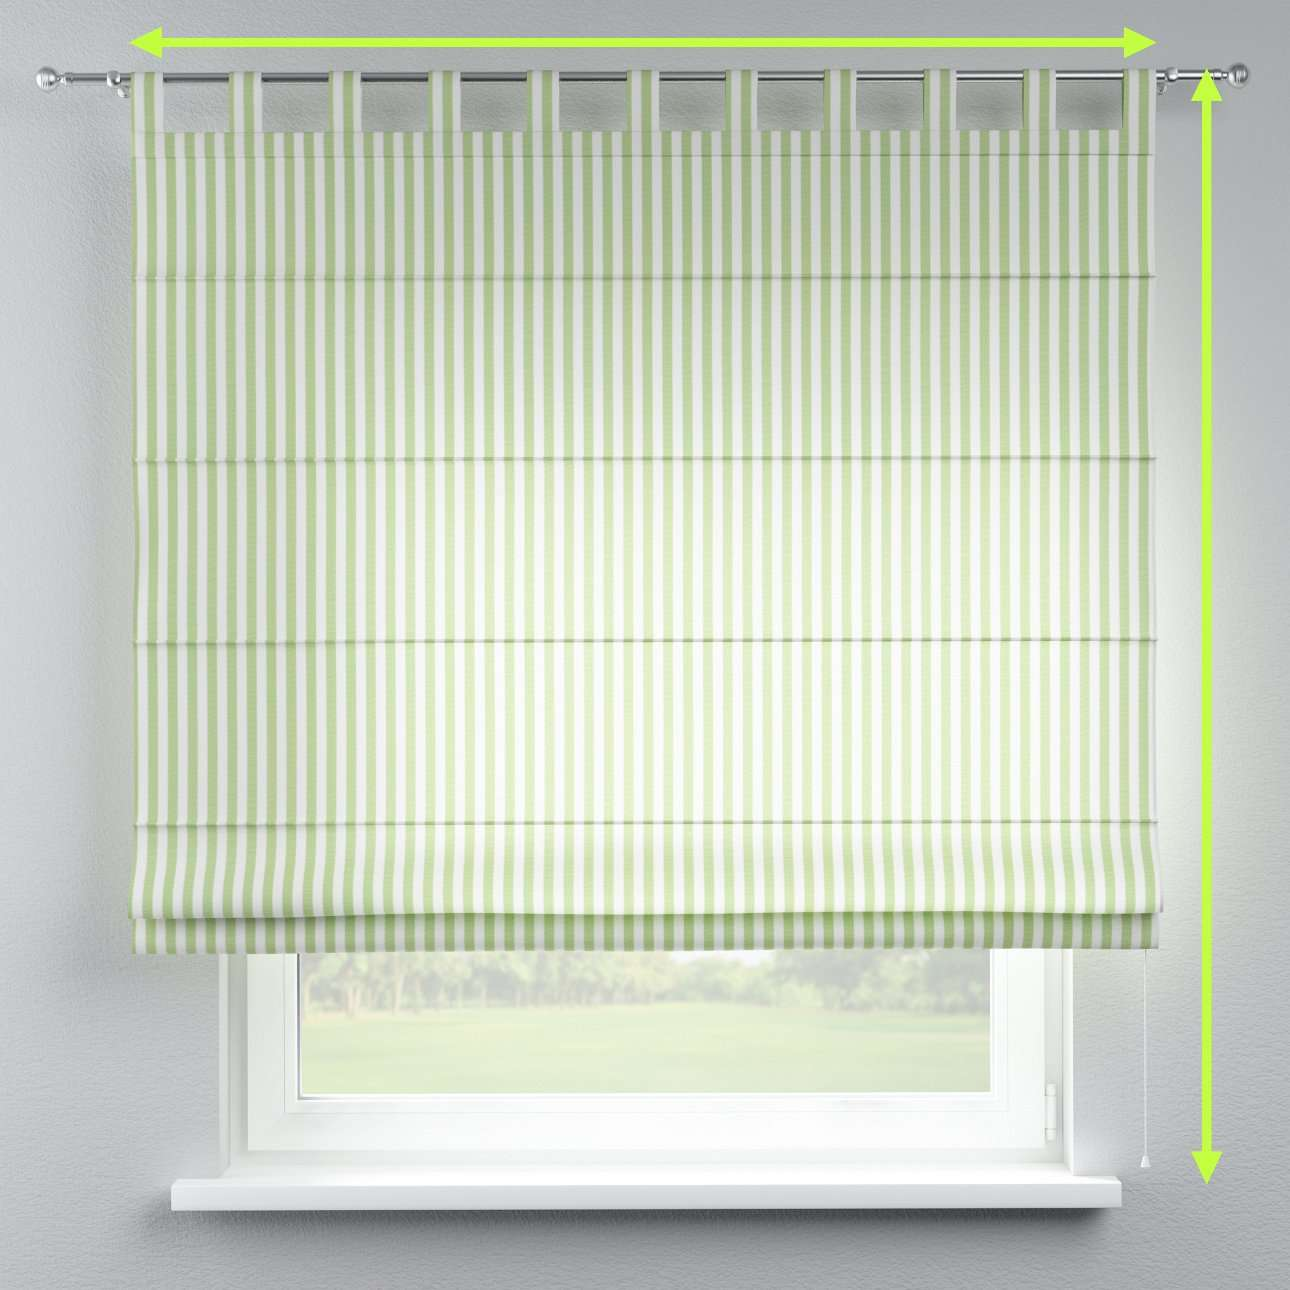 Verona tab top roman blind in collection Quadro, fabric: 136-35